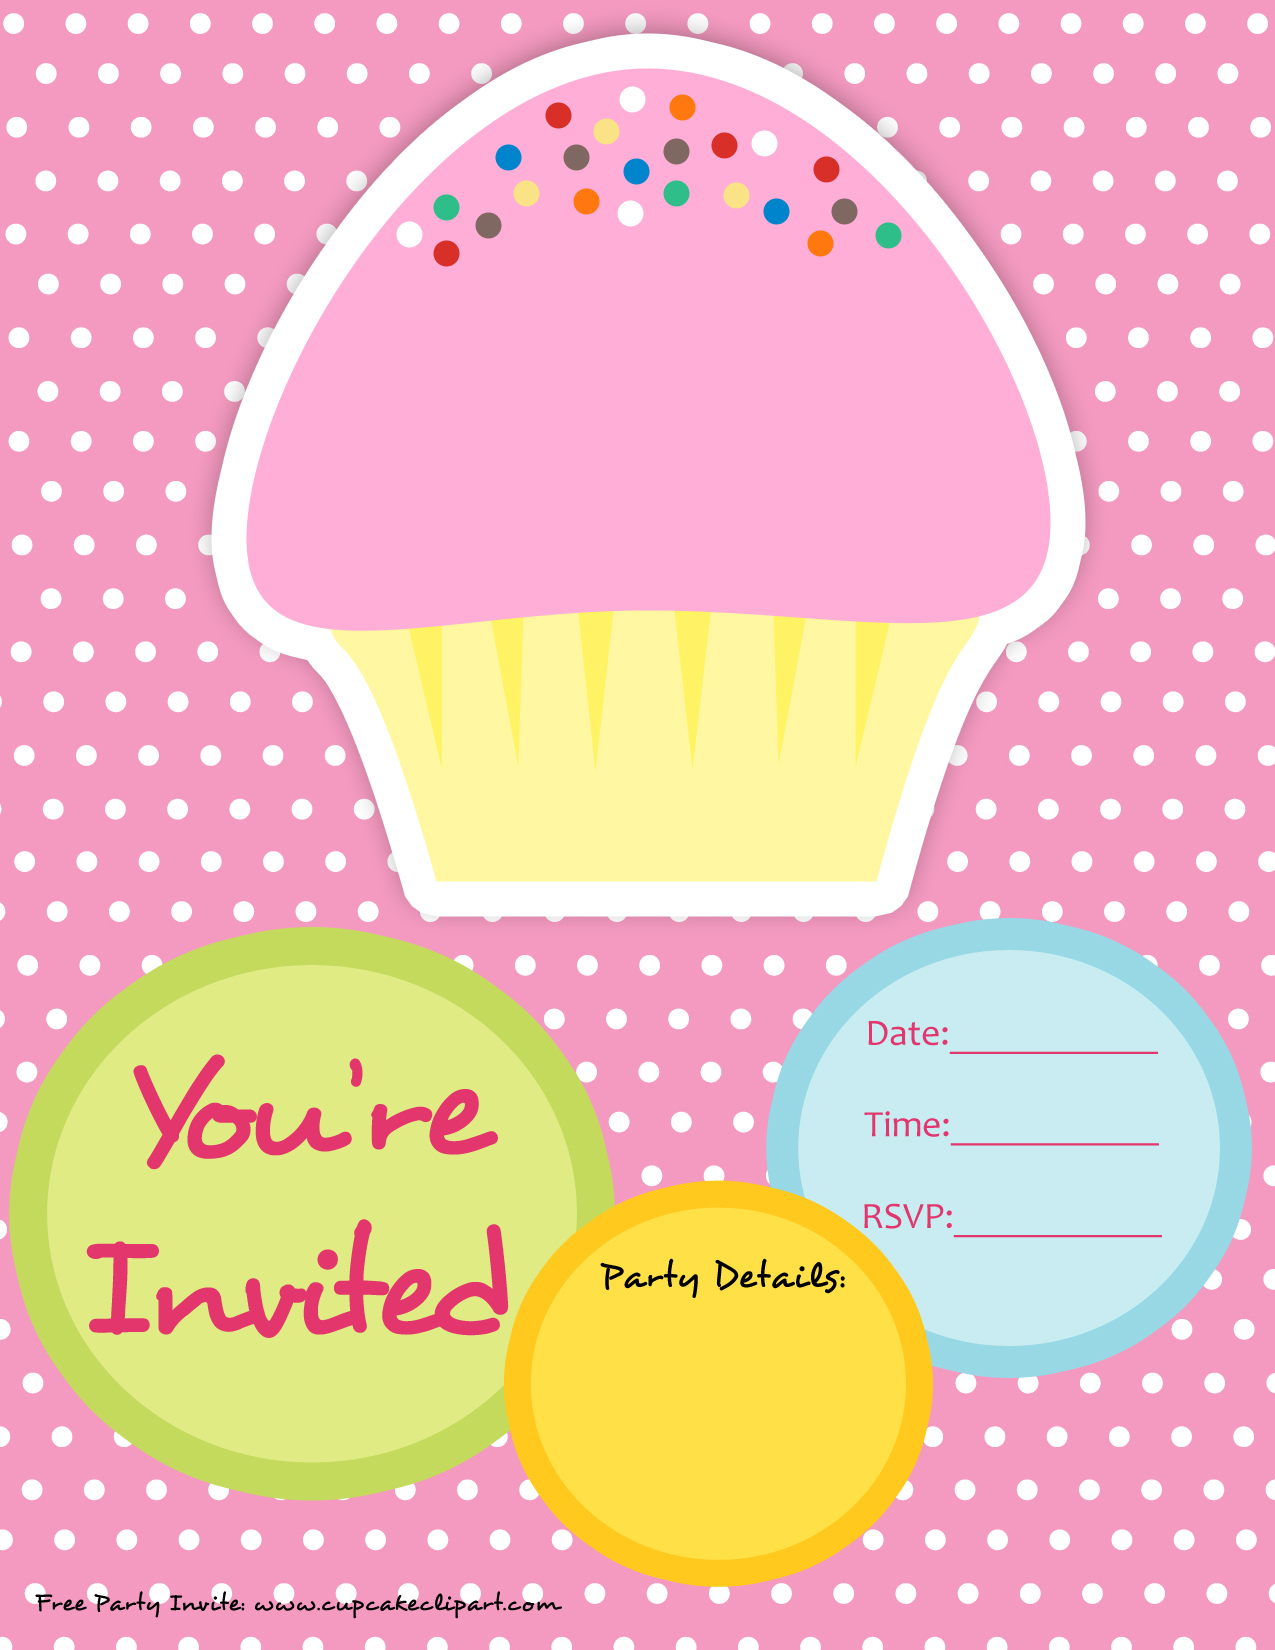 free clipart for birthday invitations ; birthday-invitation-free-clipart-15